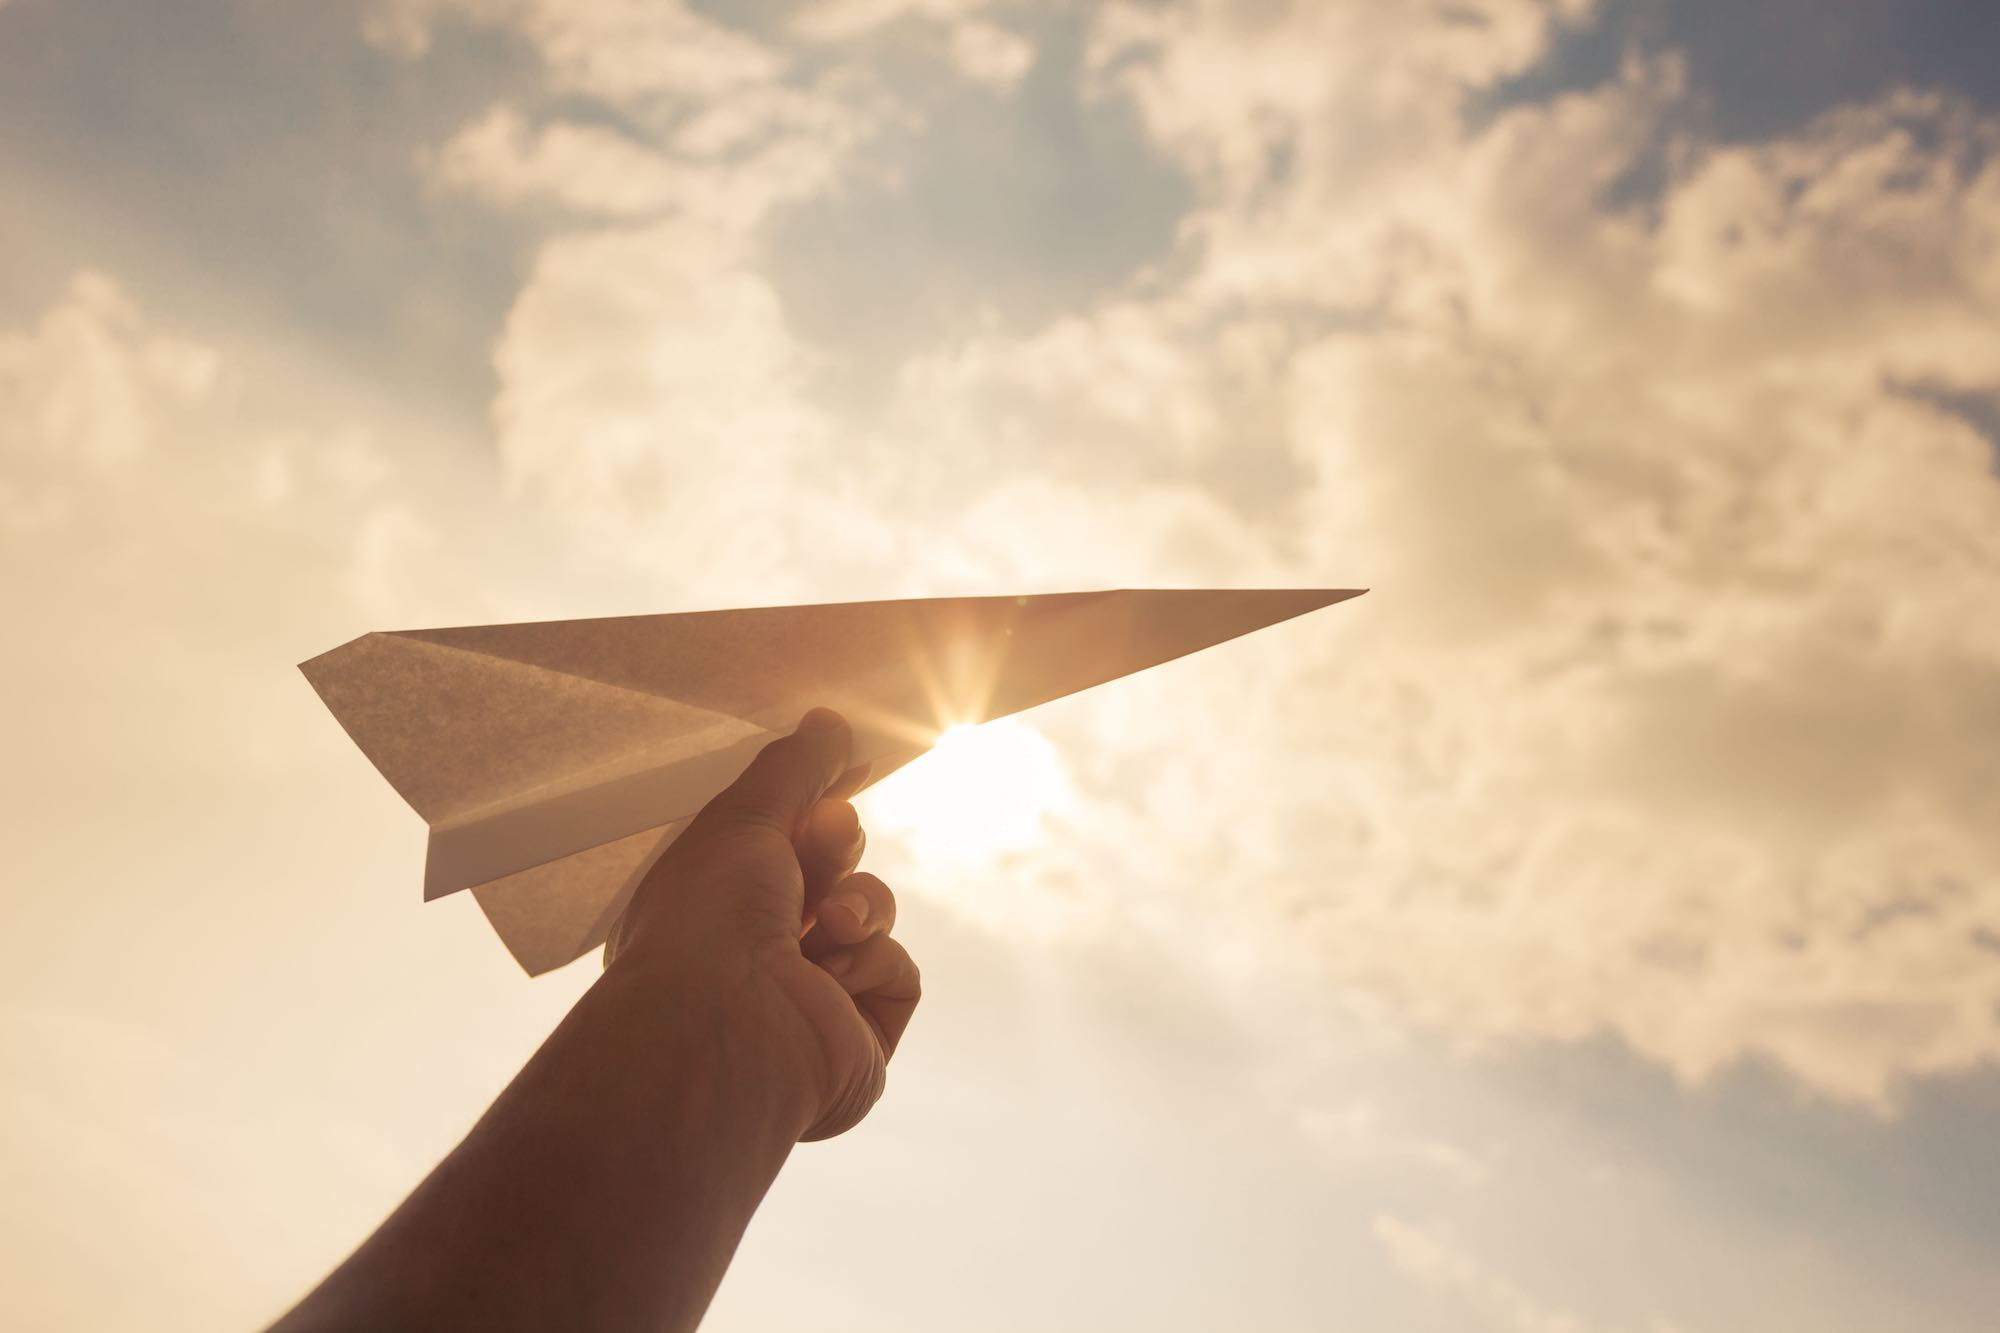 paper-airplane-held-in-sky